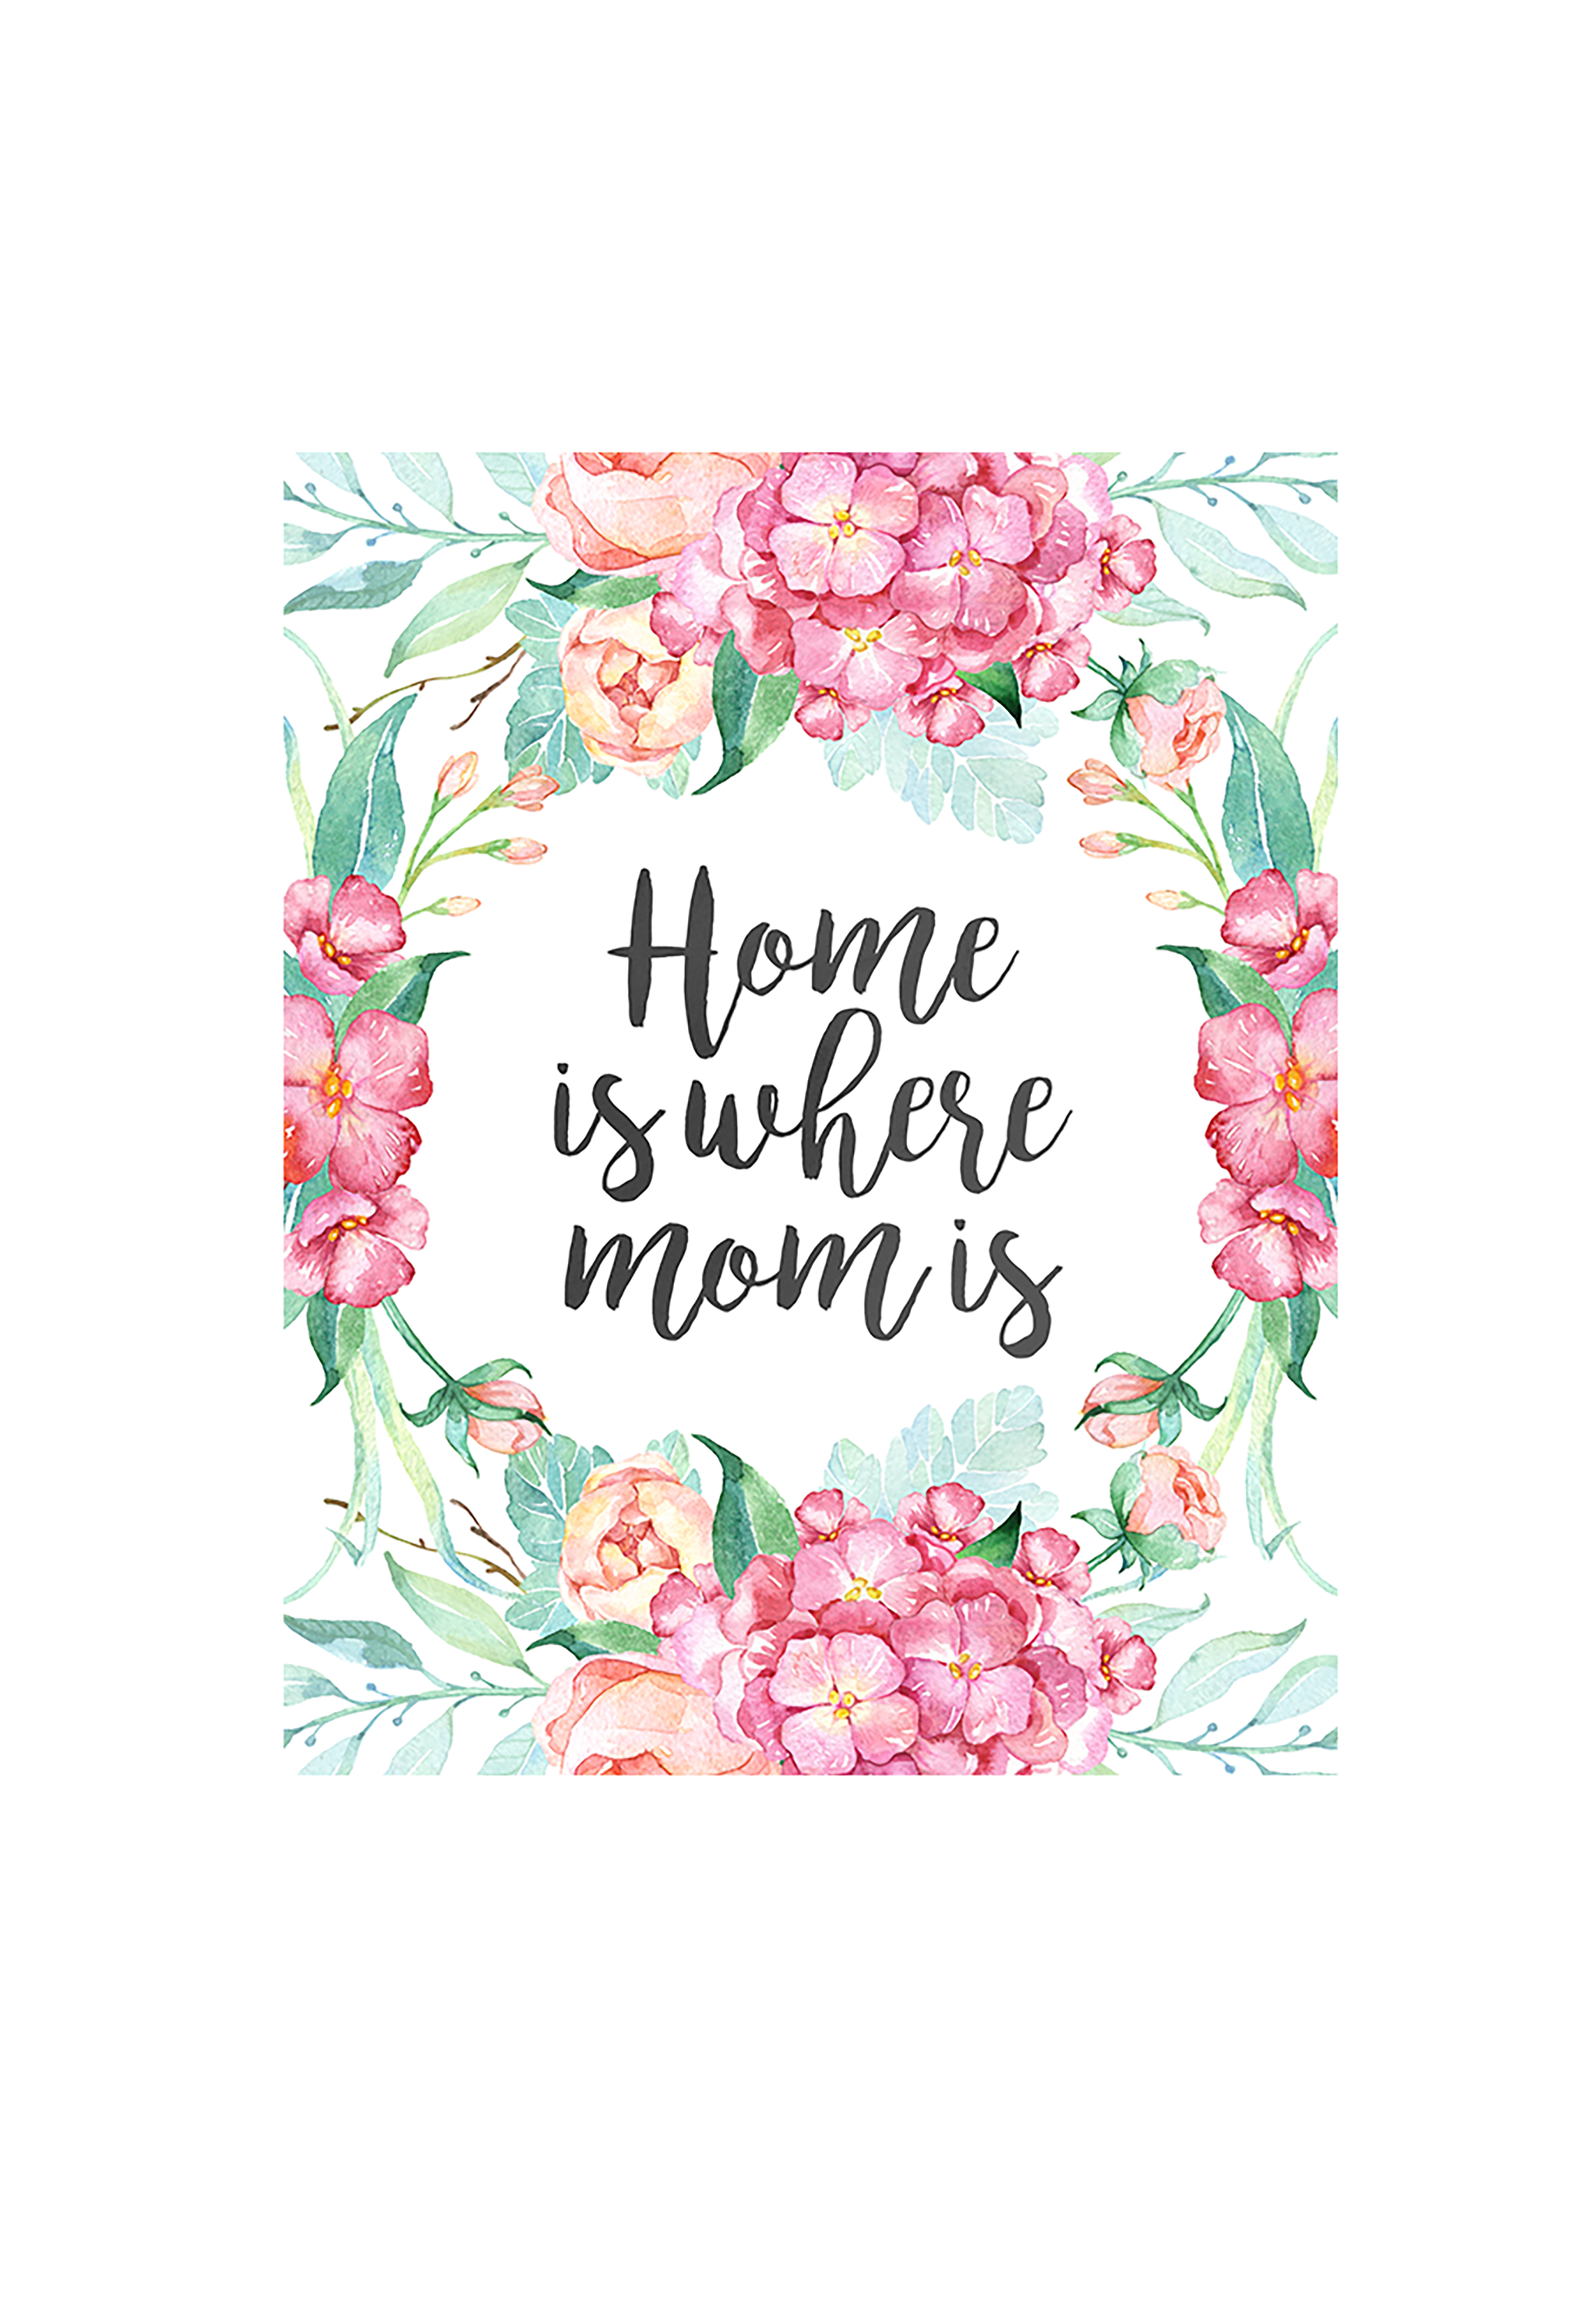 18 Mothers Day Cards - Free Printable Mother's Day Cards - Free Printable Mothers Day Cards From The Dog